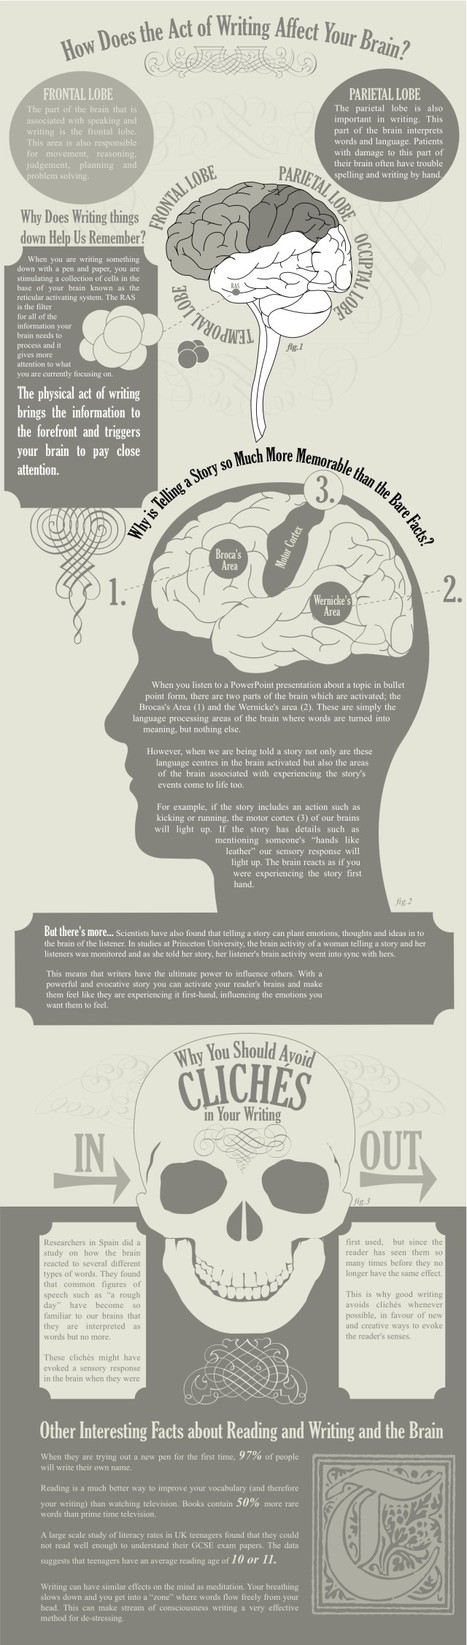 The Impact of Writing on Our Brain [Infographic] | Educação&Web | Scoop.it